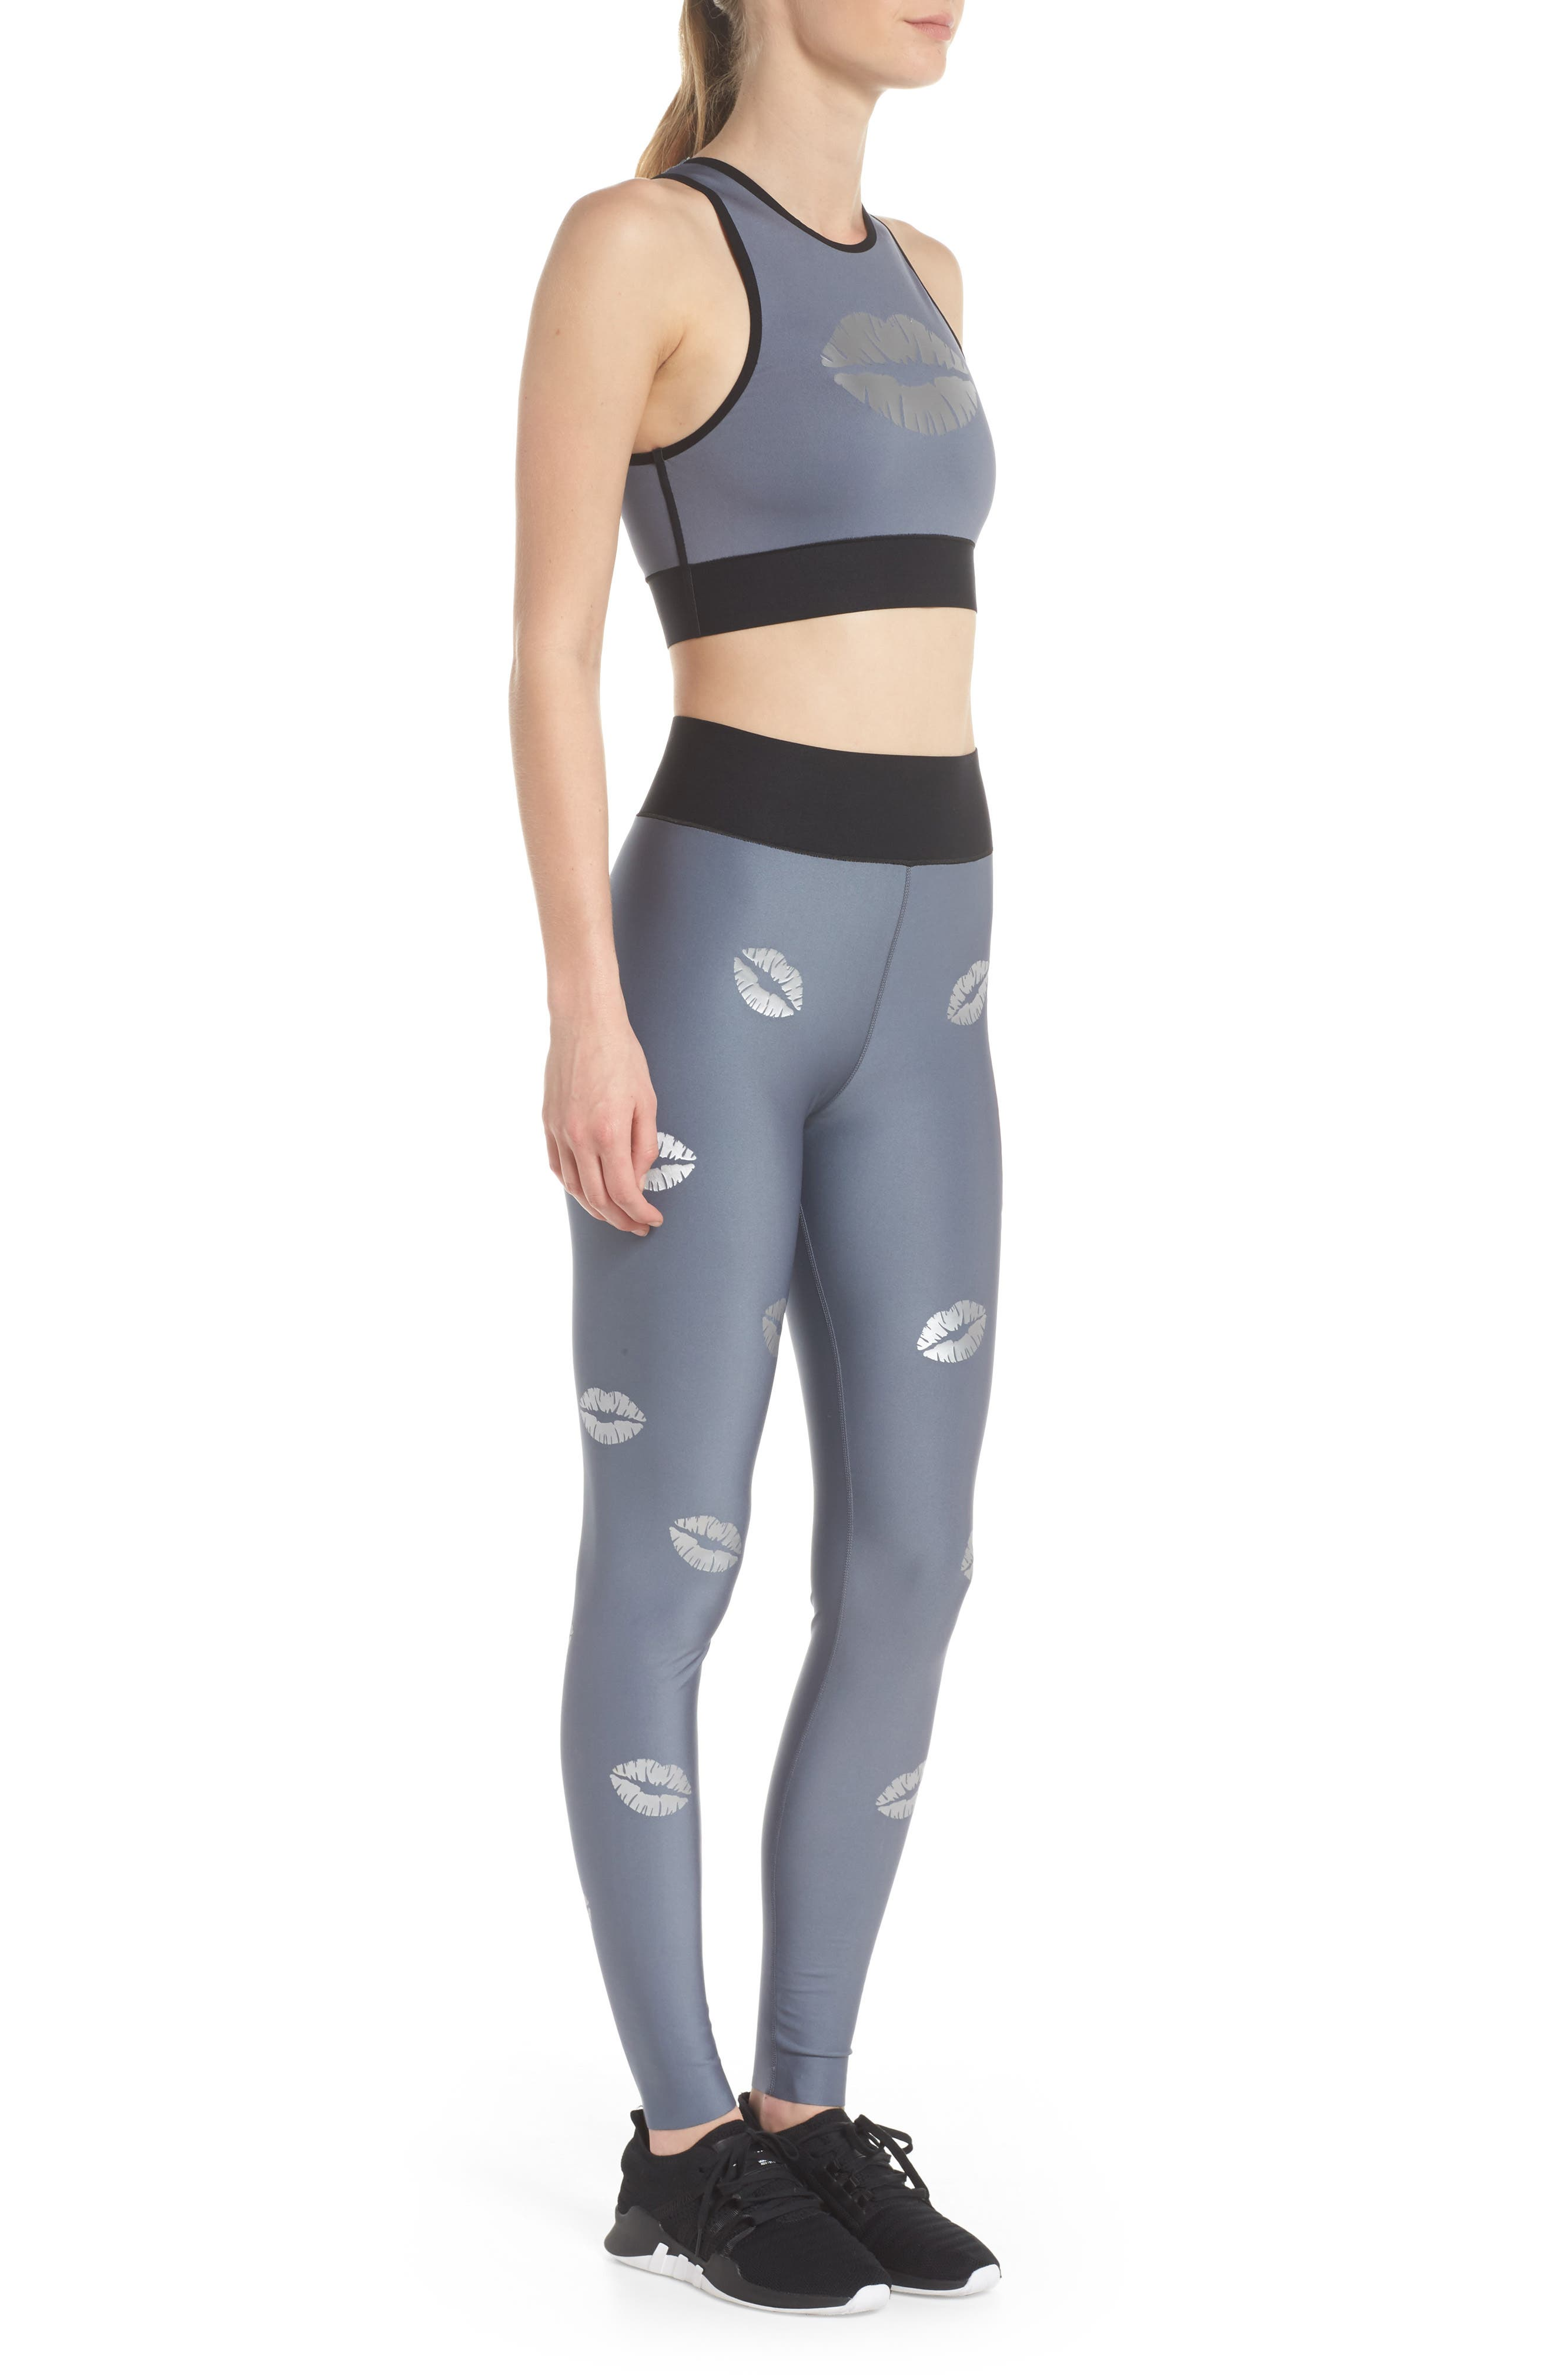 Altitude Lux Make Out Crop Top,                             Alternate thumbnail 8, color,                             Silver Brushed Steel